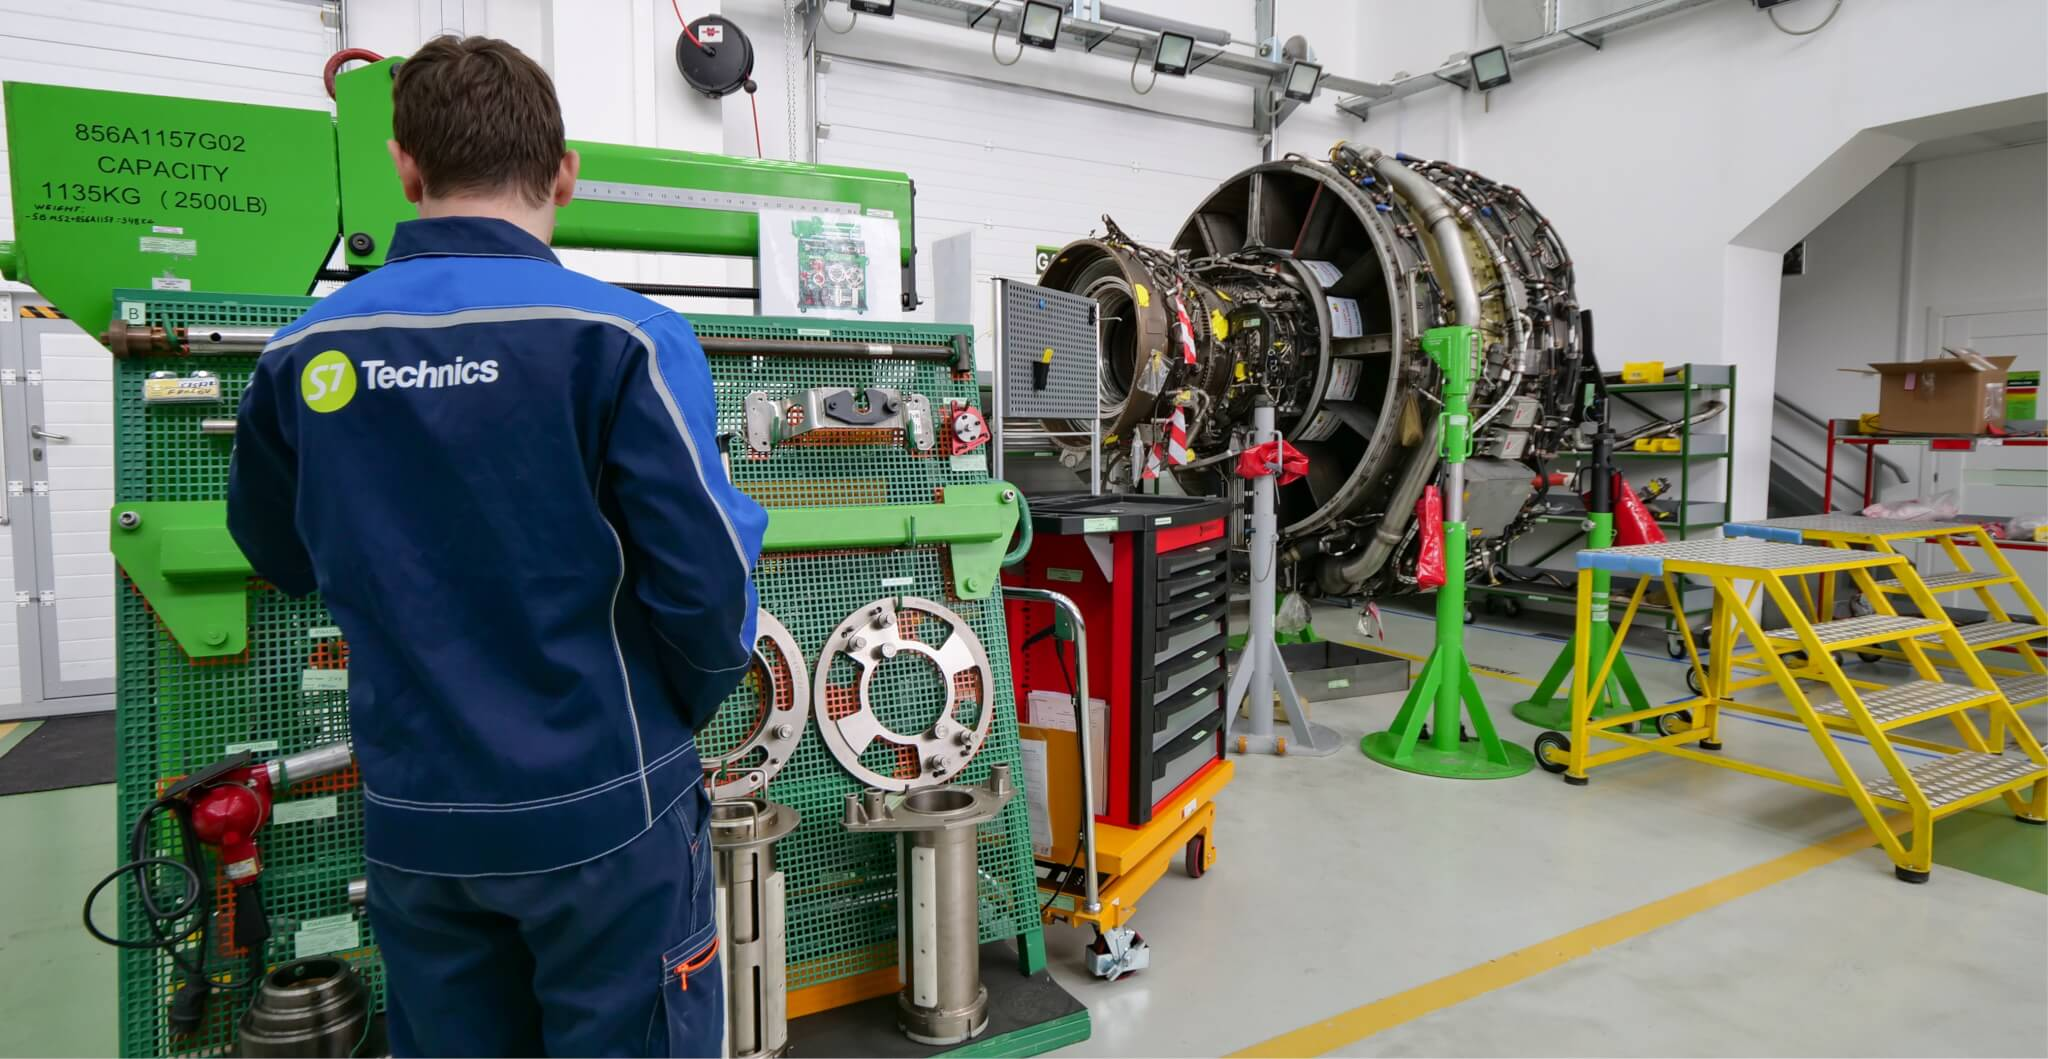 S7 Technics Approved For Complete Disassembly And Reassembly Of Aircraft Engine Wiring Repair Shop At Domodedovo Airport Has Expanded Its Capabilities In Cfm56 5b 7b Mro The Shops Technical Engineering Staff